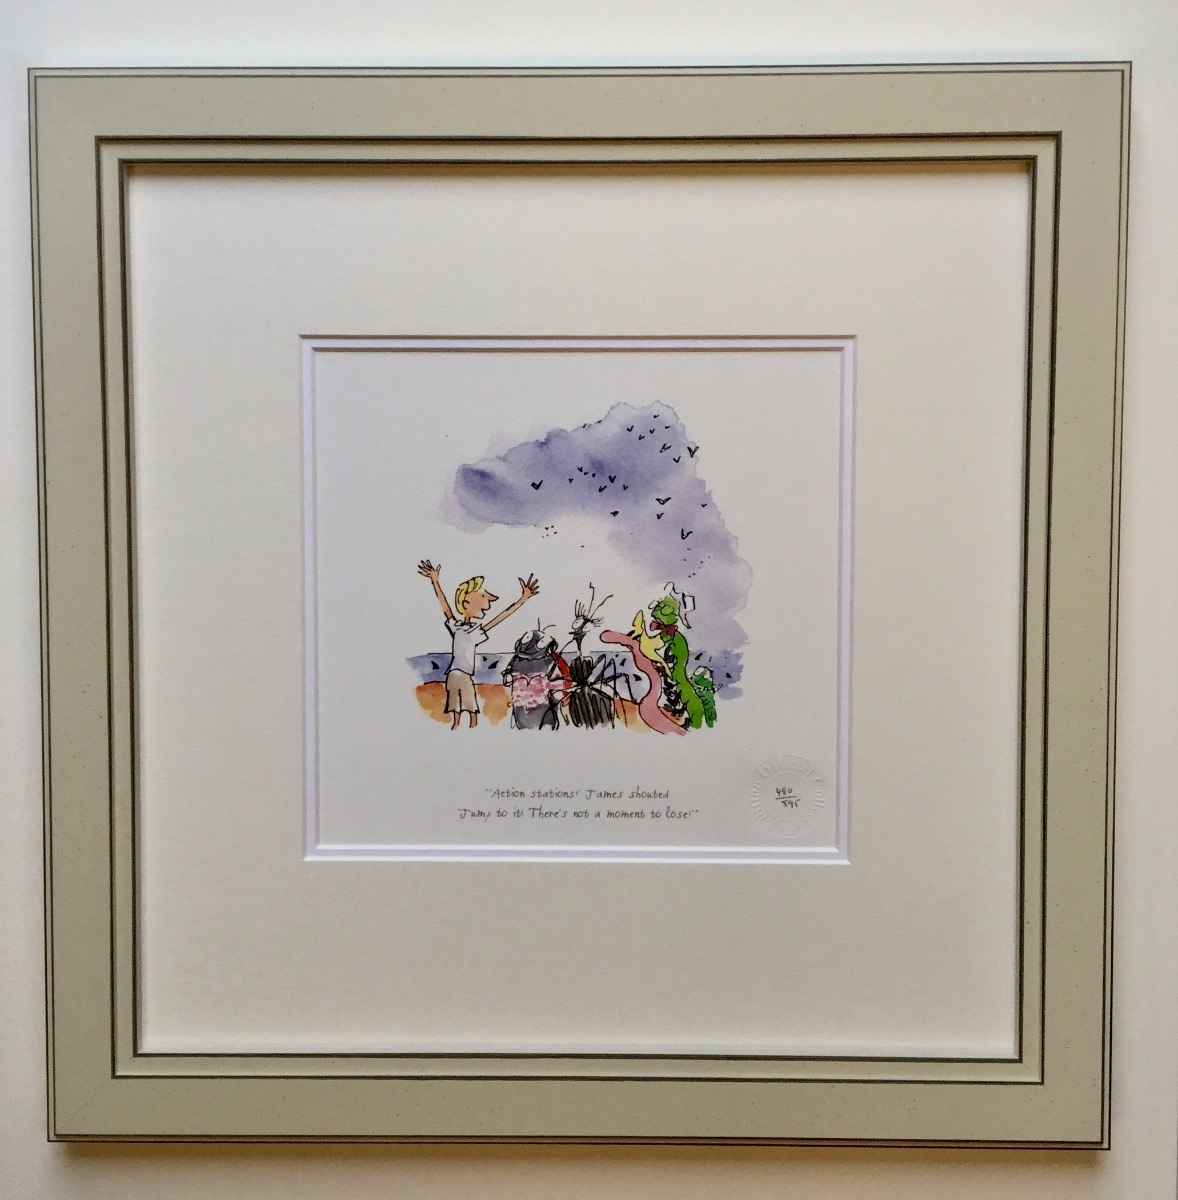 Action Stations! - James Shouted by Quentin Blake, Children | Family